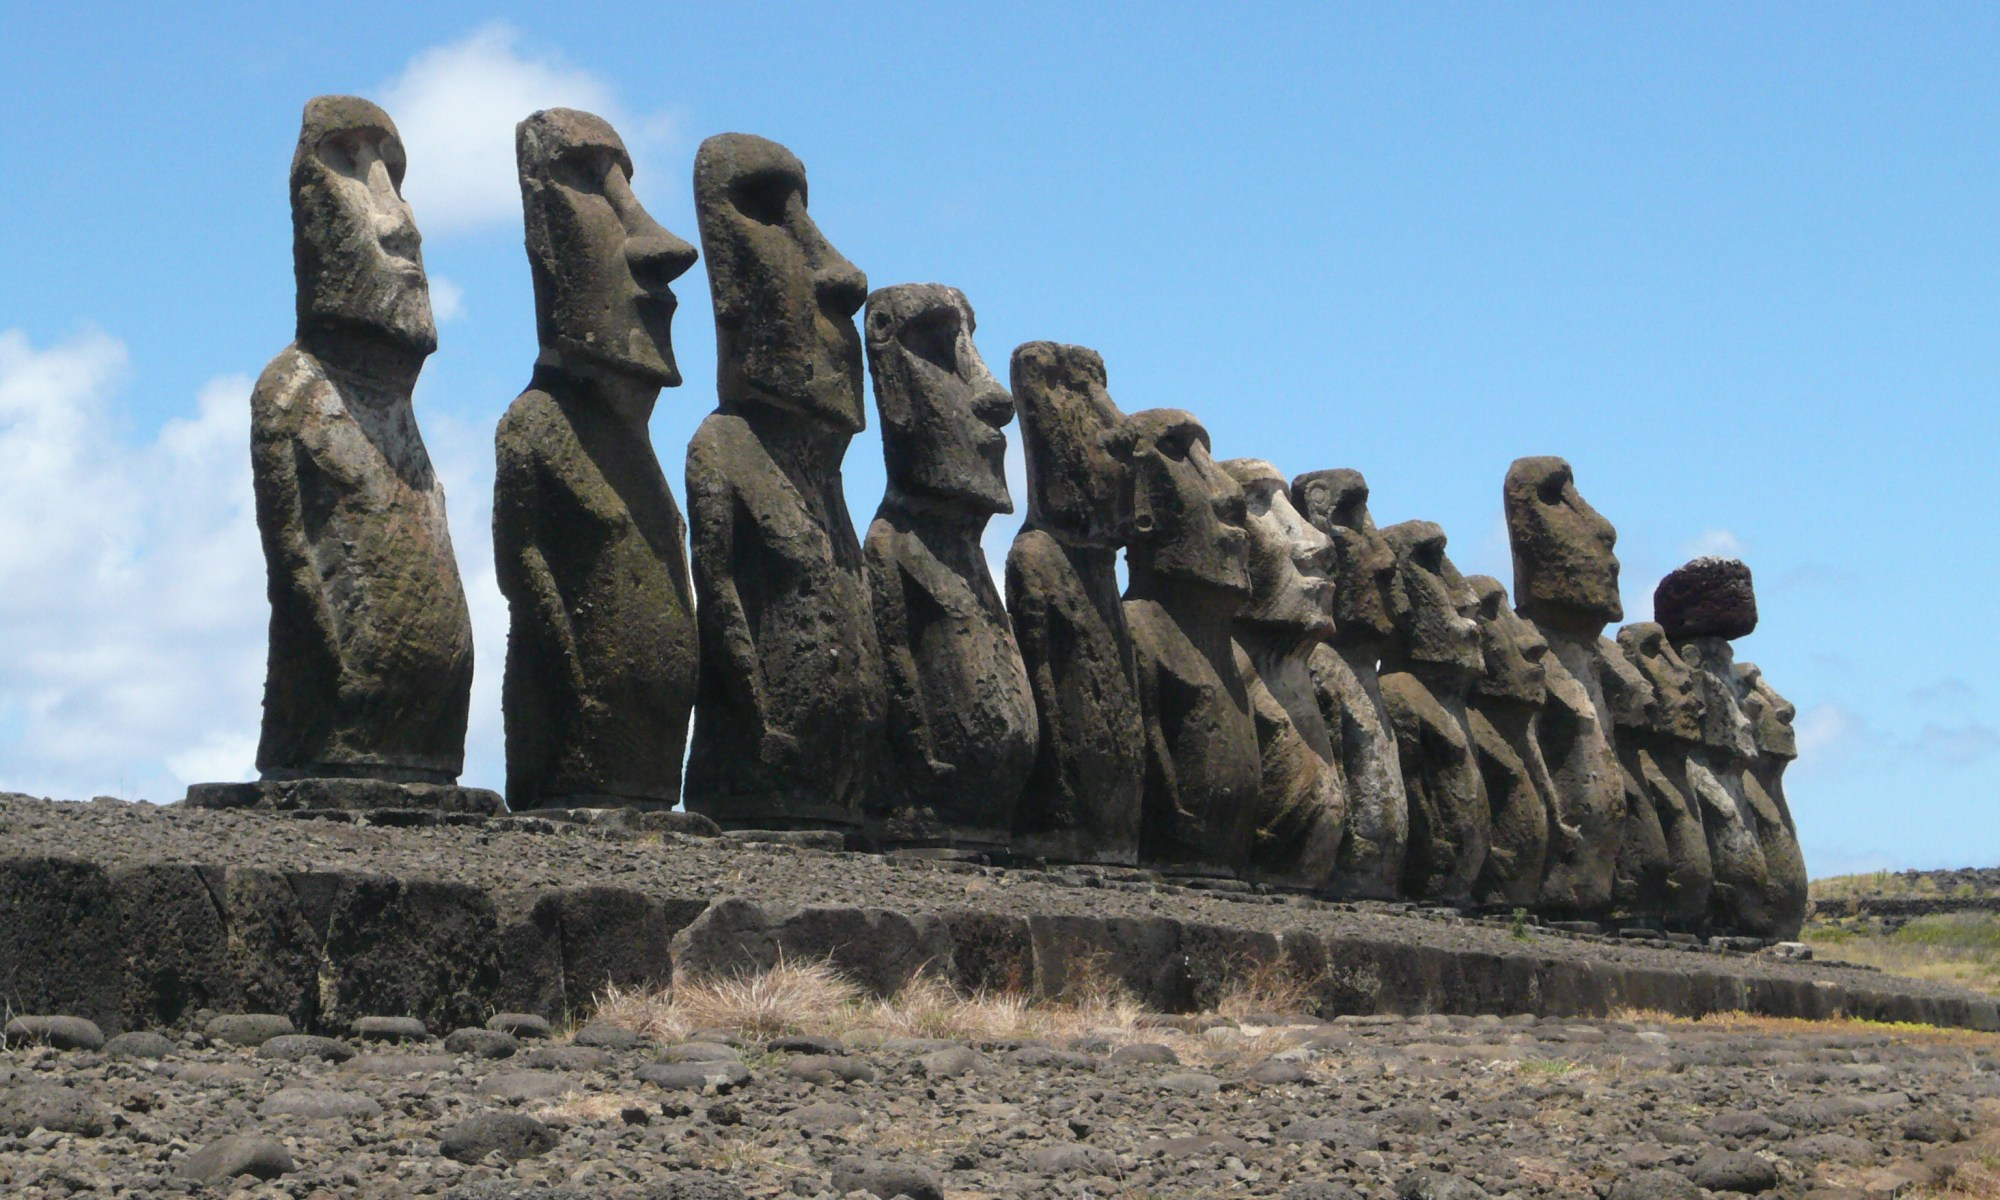 The moai statues of Easter Island. Under threat from climate change. Photograph: Jane Downes.